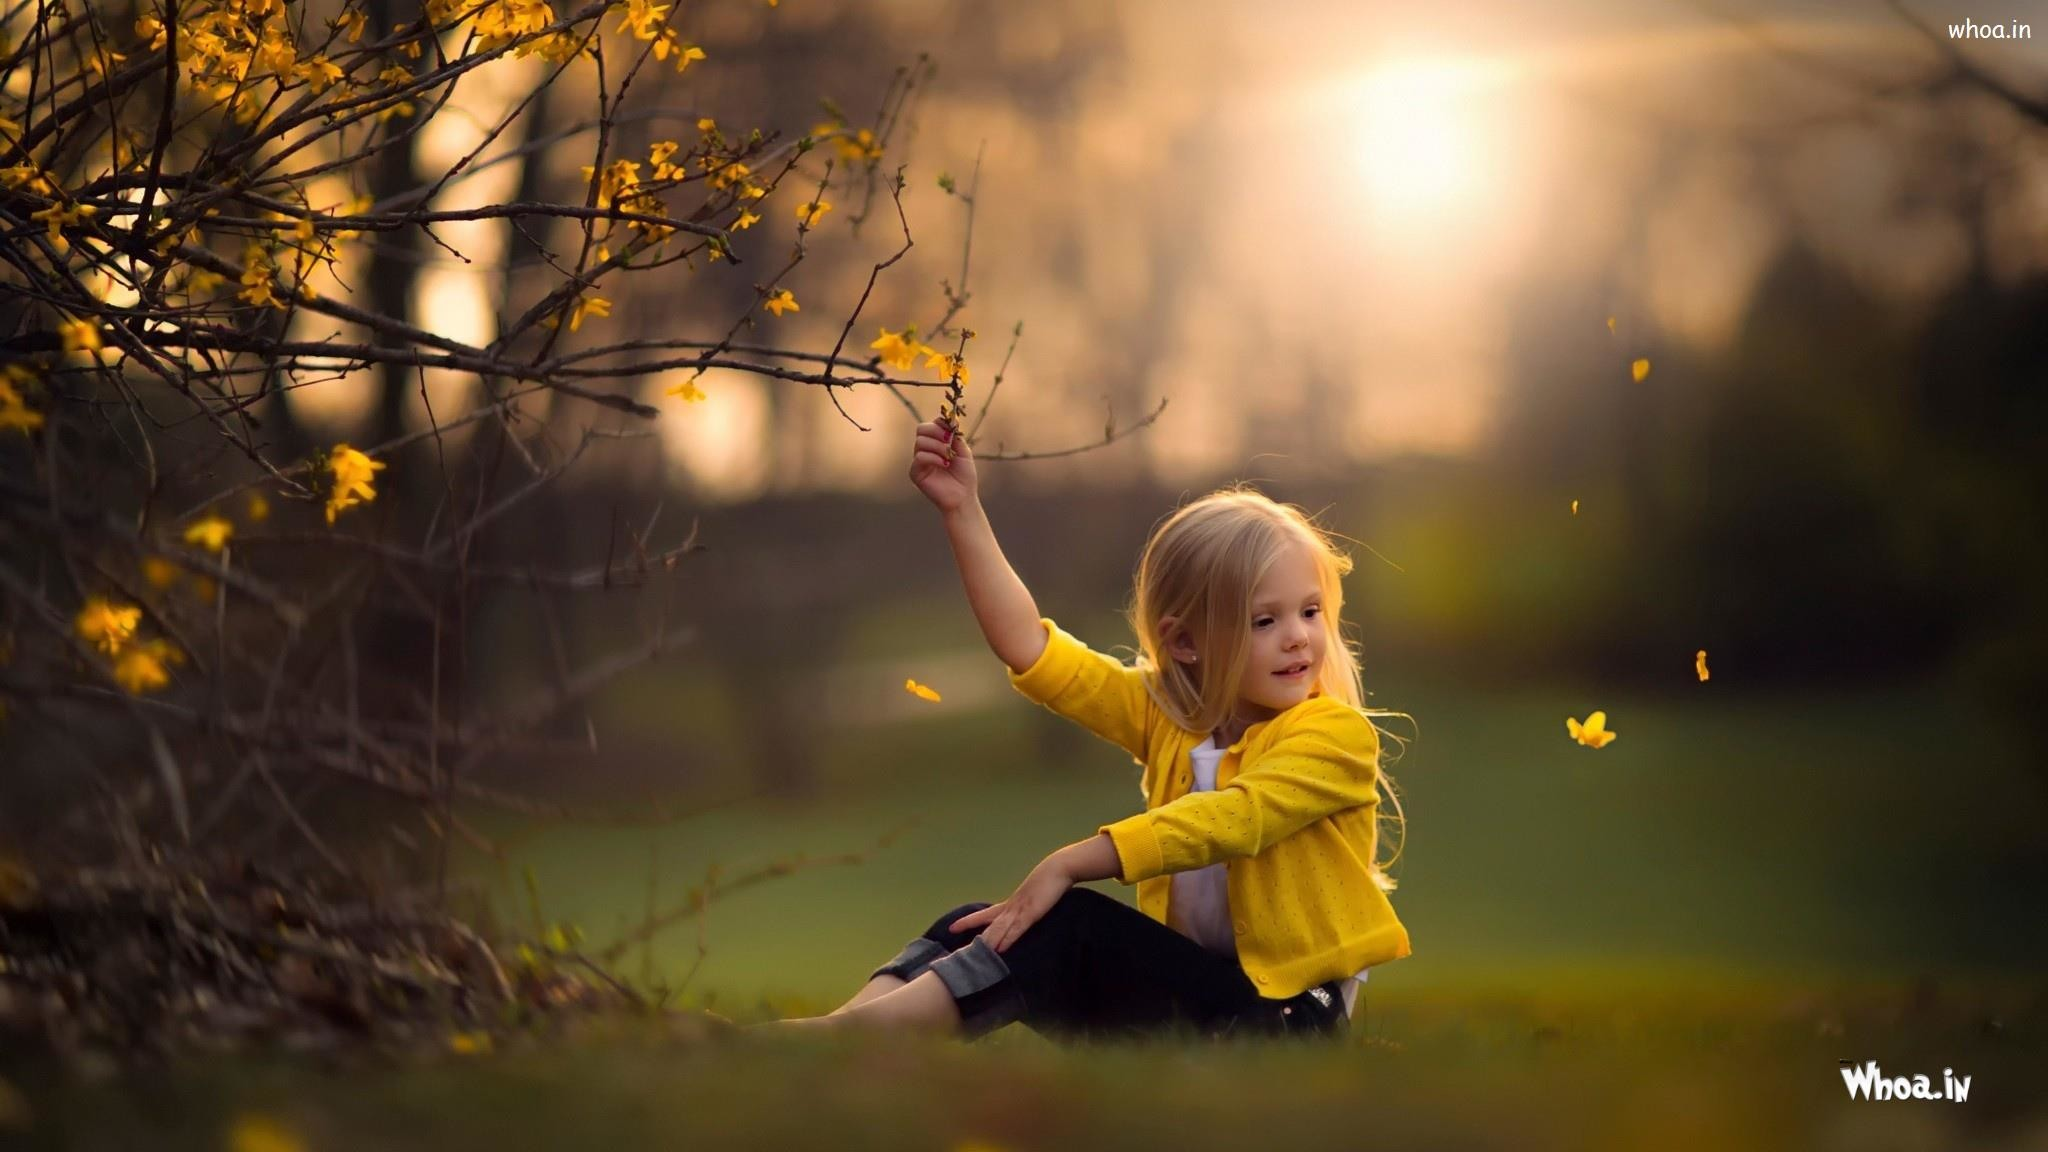 Cute Baby Pictures GFT006 – wallpaperjosh | Download Wallpaper | Pinterest  | Baby pictures and Wallpaper